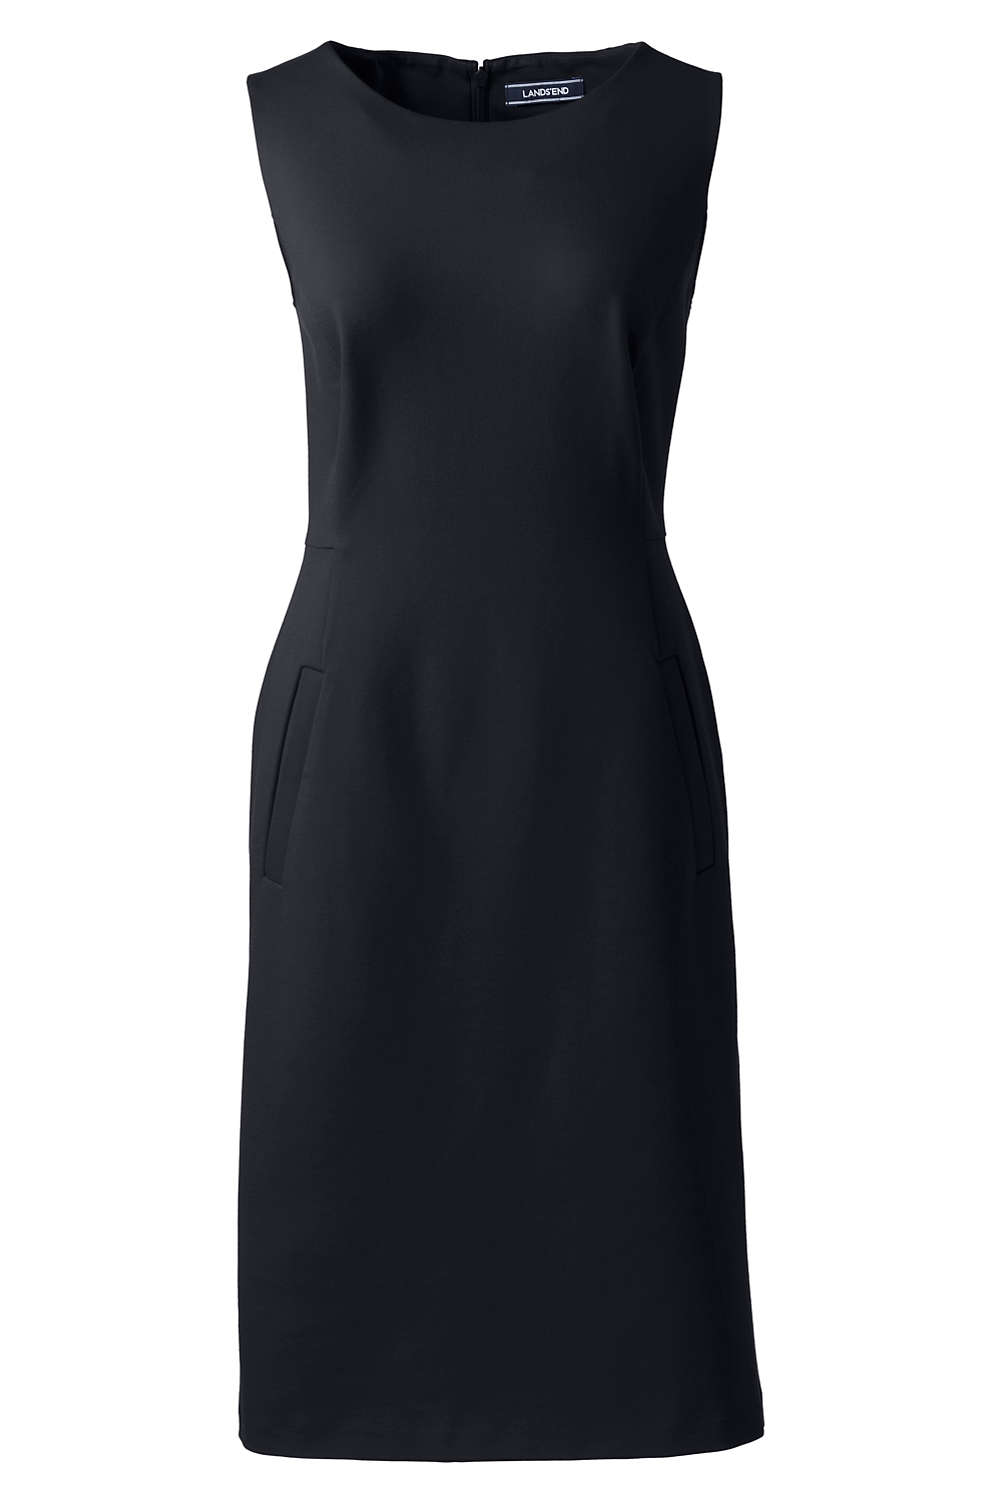 3befee01282 Women s Sleeveless Ponté Sheath Dress from Lands  End